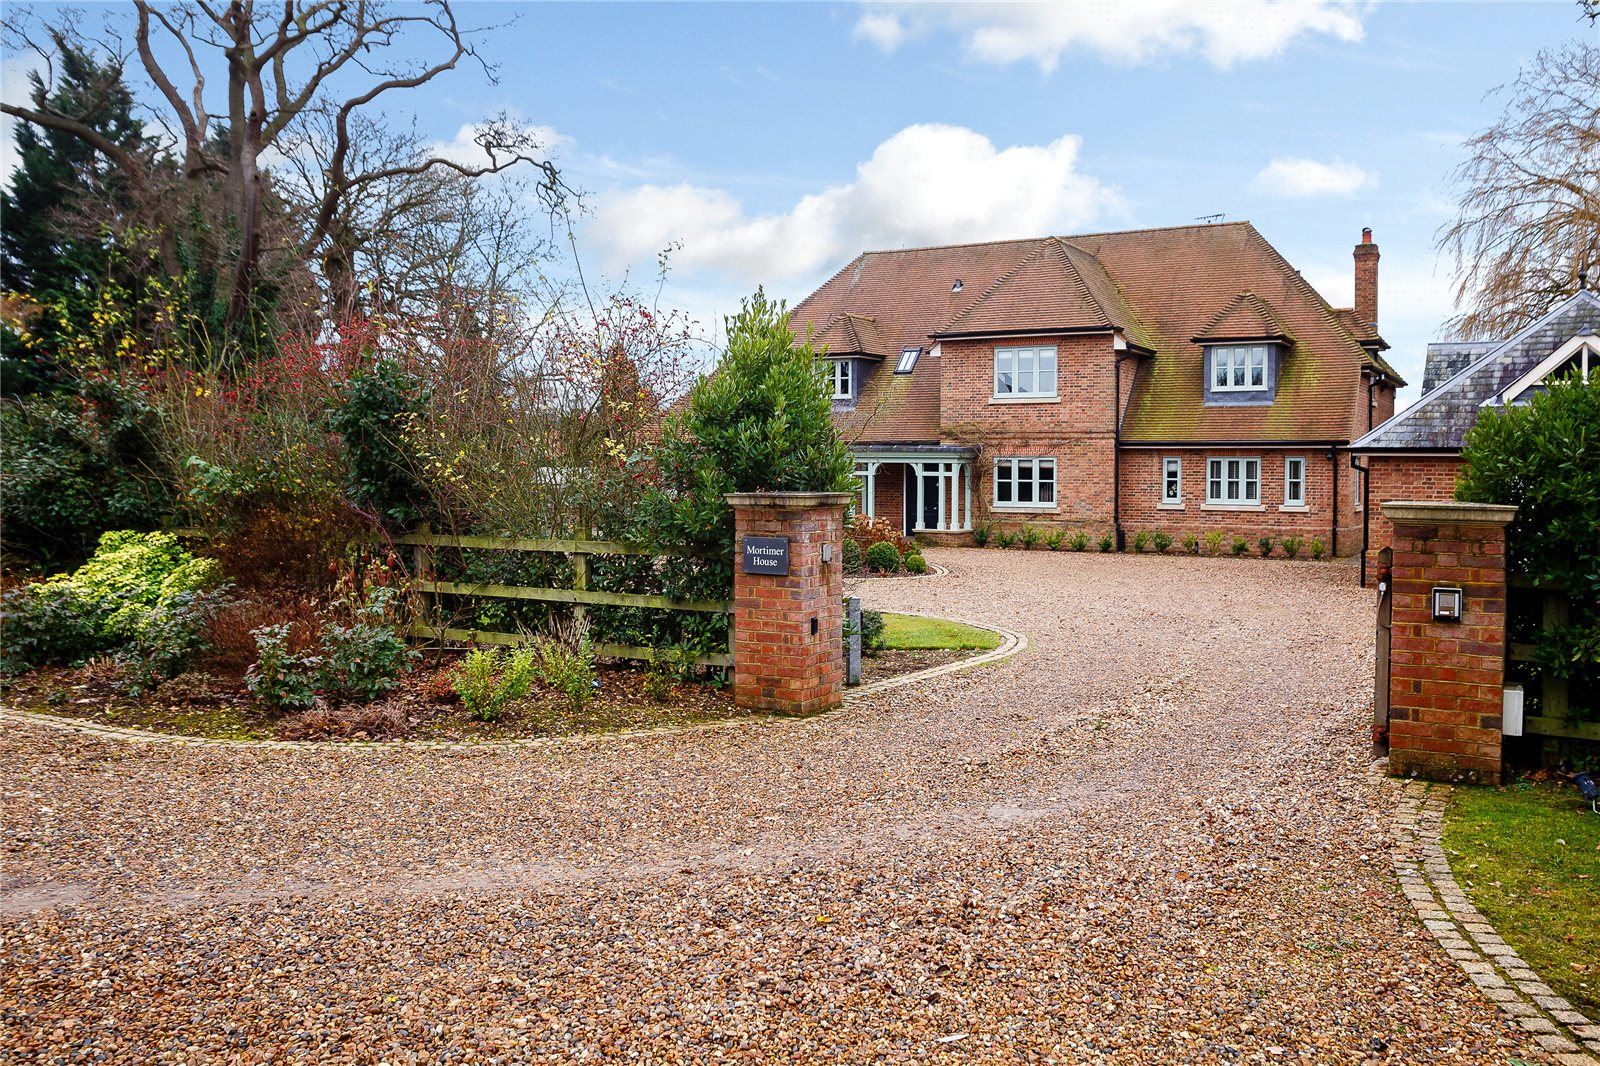 Single Family Home for Sale at Pottersheath Road, Welwyn, Hertfordshire, AL6 Welwyn, England